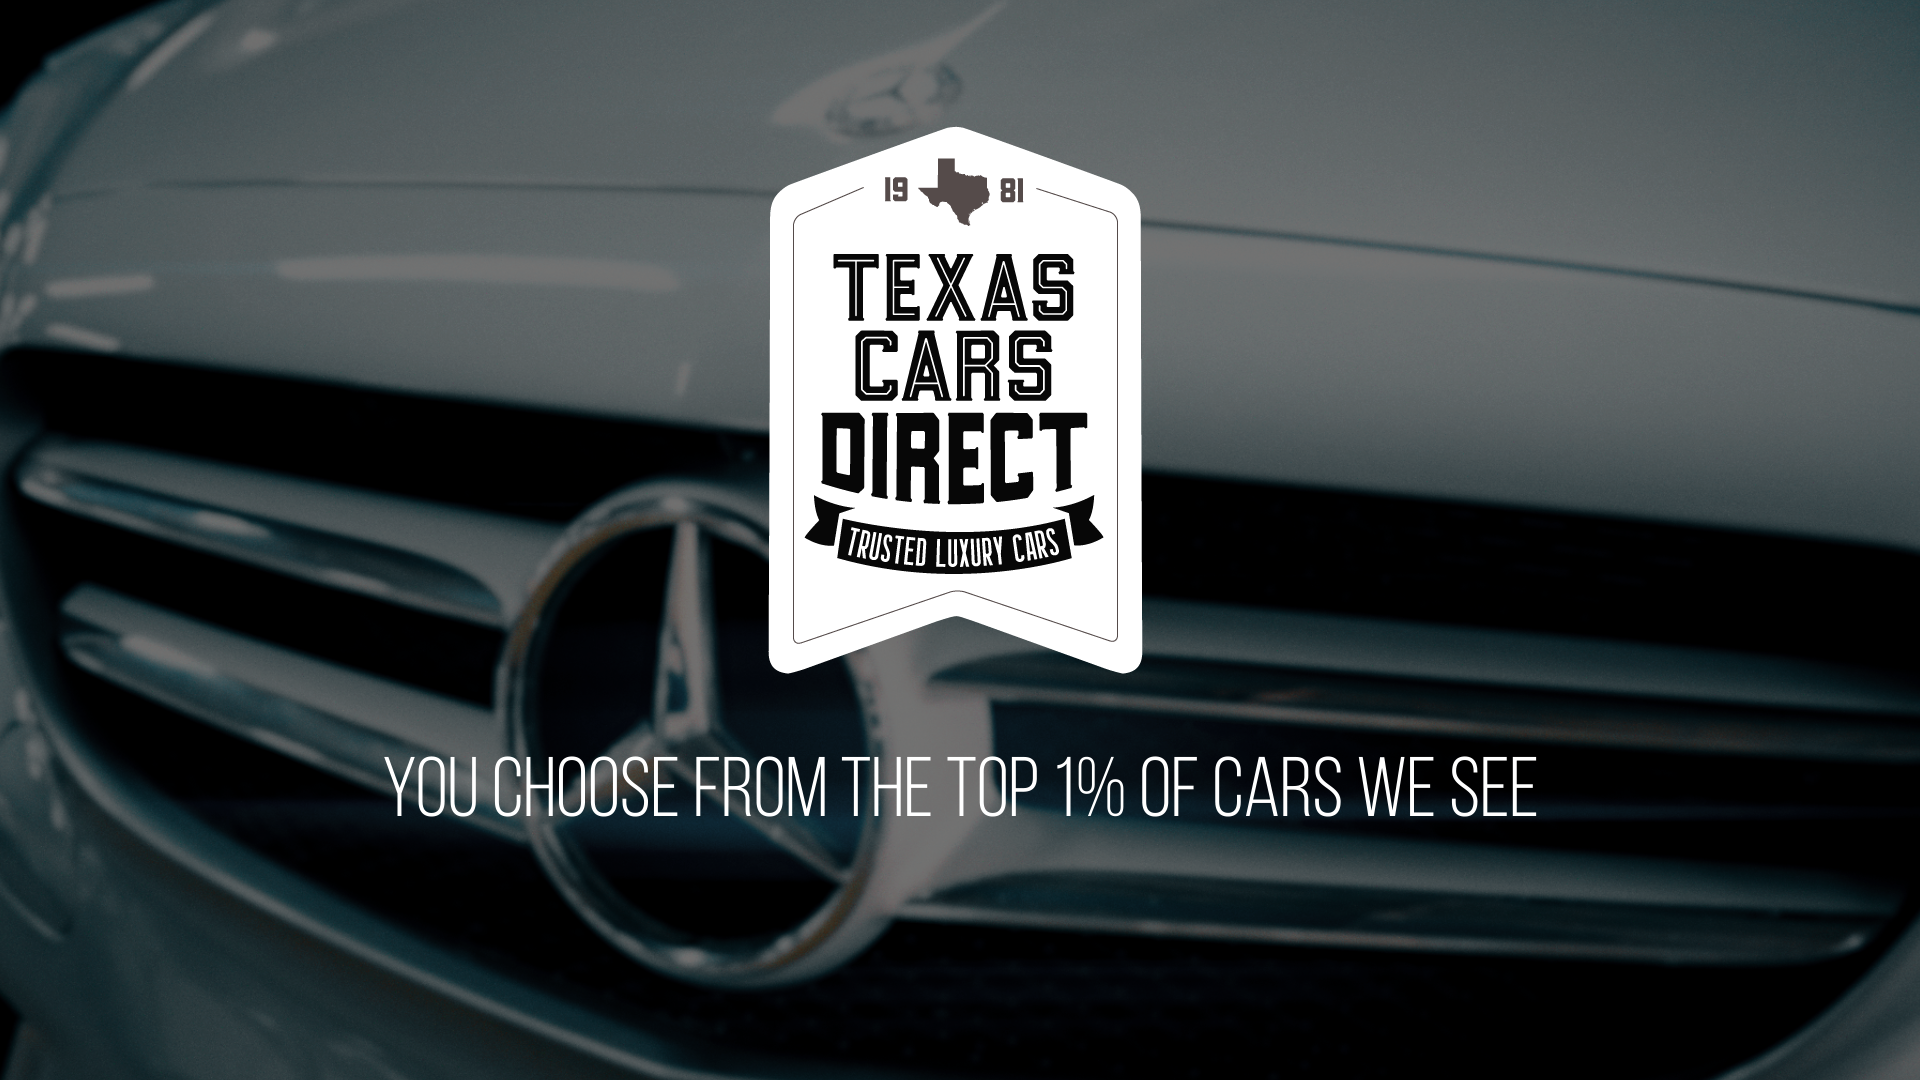 Texas Cars Direct — Brand Video Feature Series